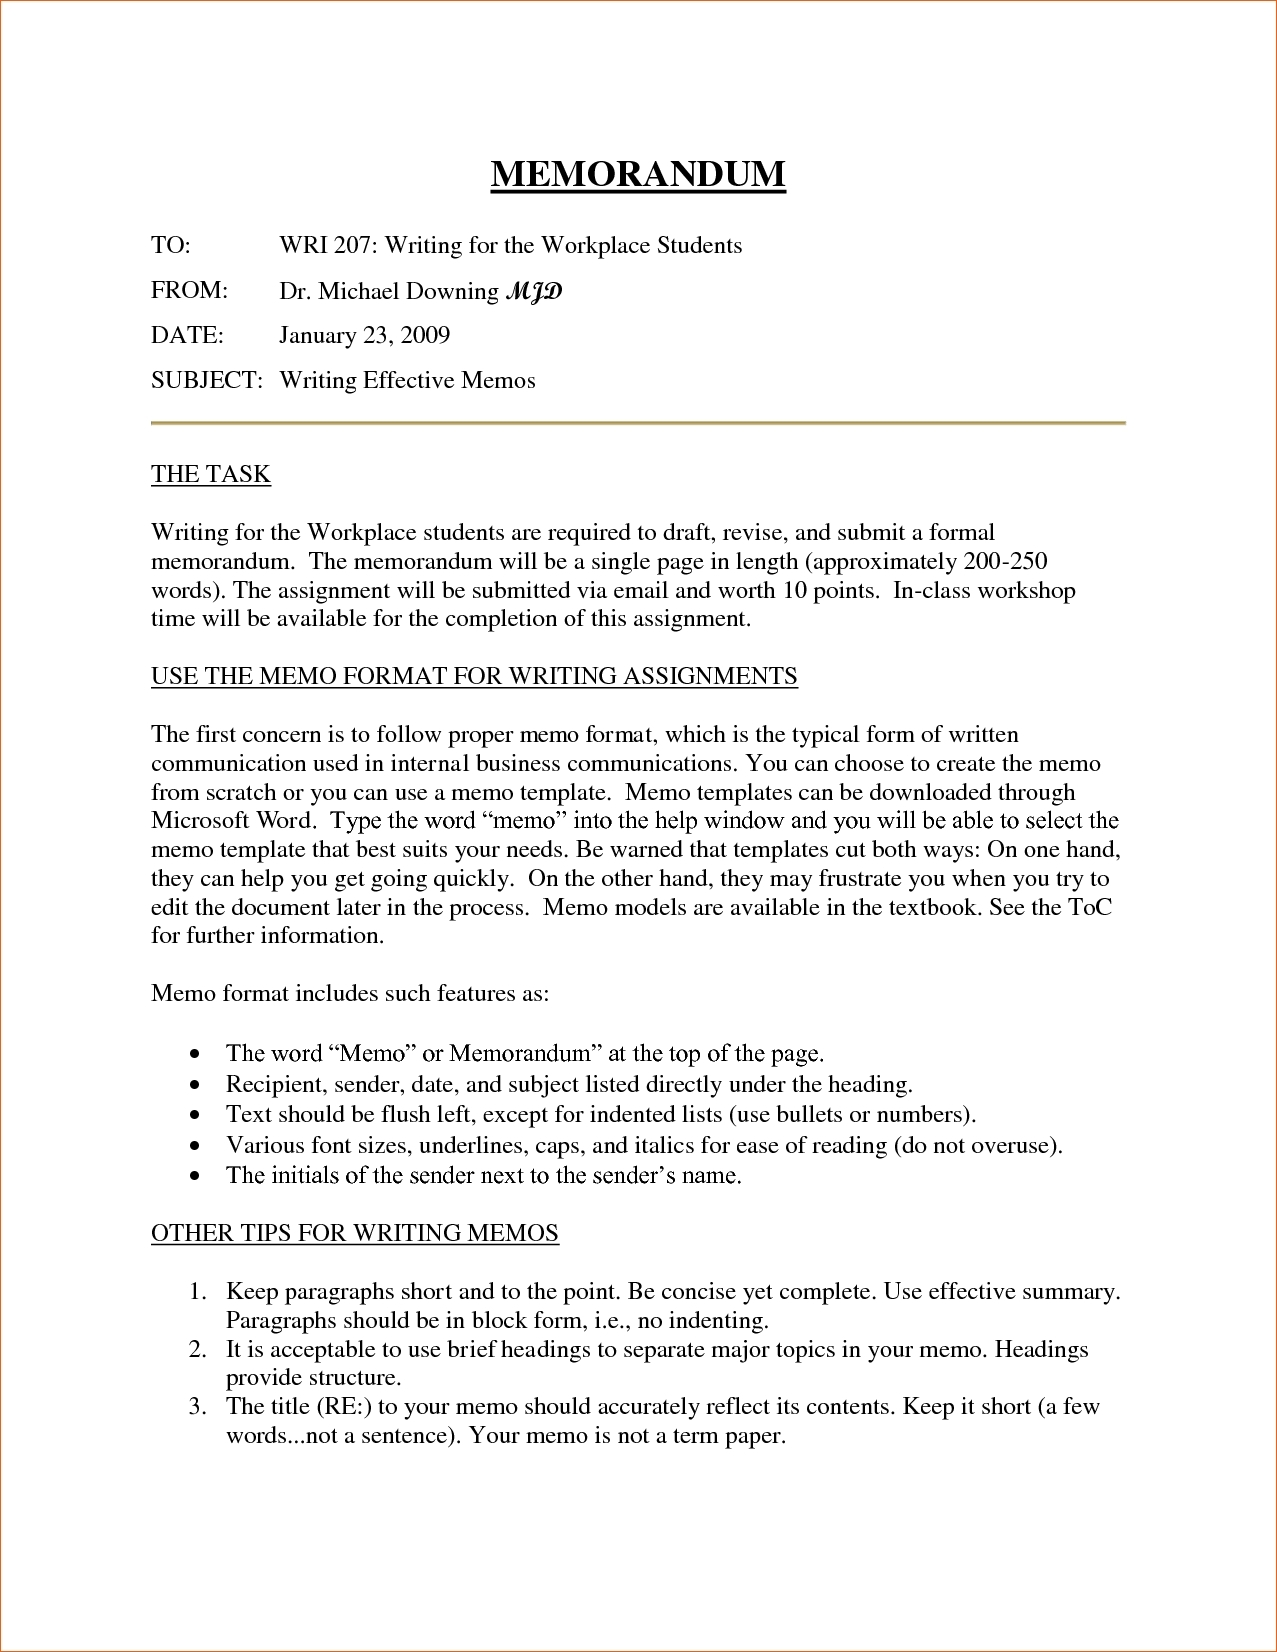 Formal Business Memo Format | World Of Example inside Formal Business Memo Format 23105